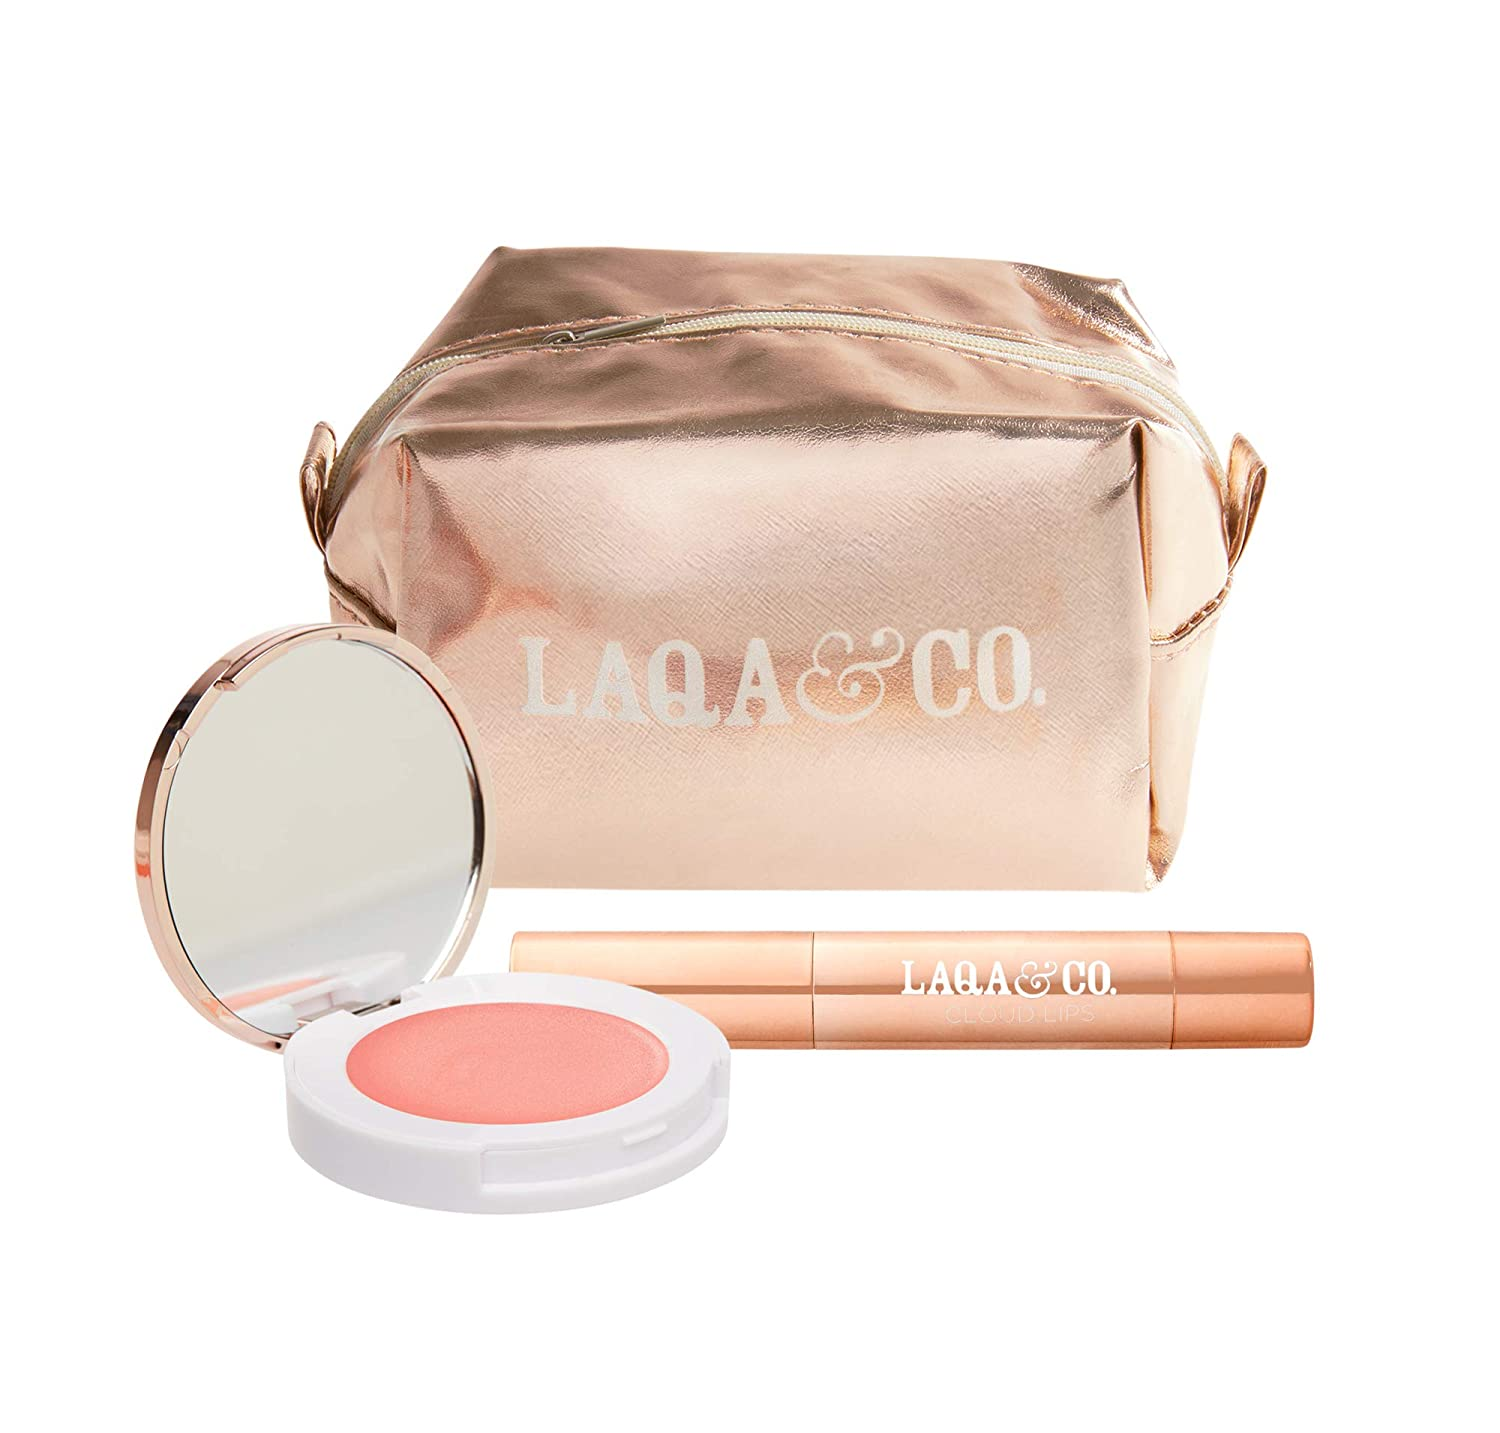 LAQA Co. Daydreaming Duo Gift Set, Highlighter and Matte Lipstick Set with Rose Gold Makeup Bag for Women